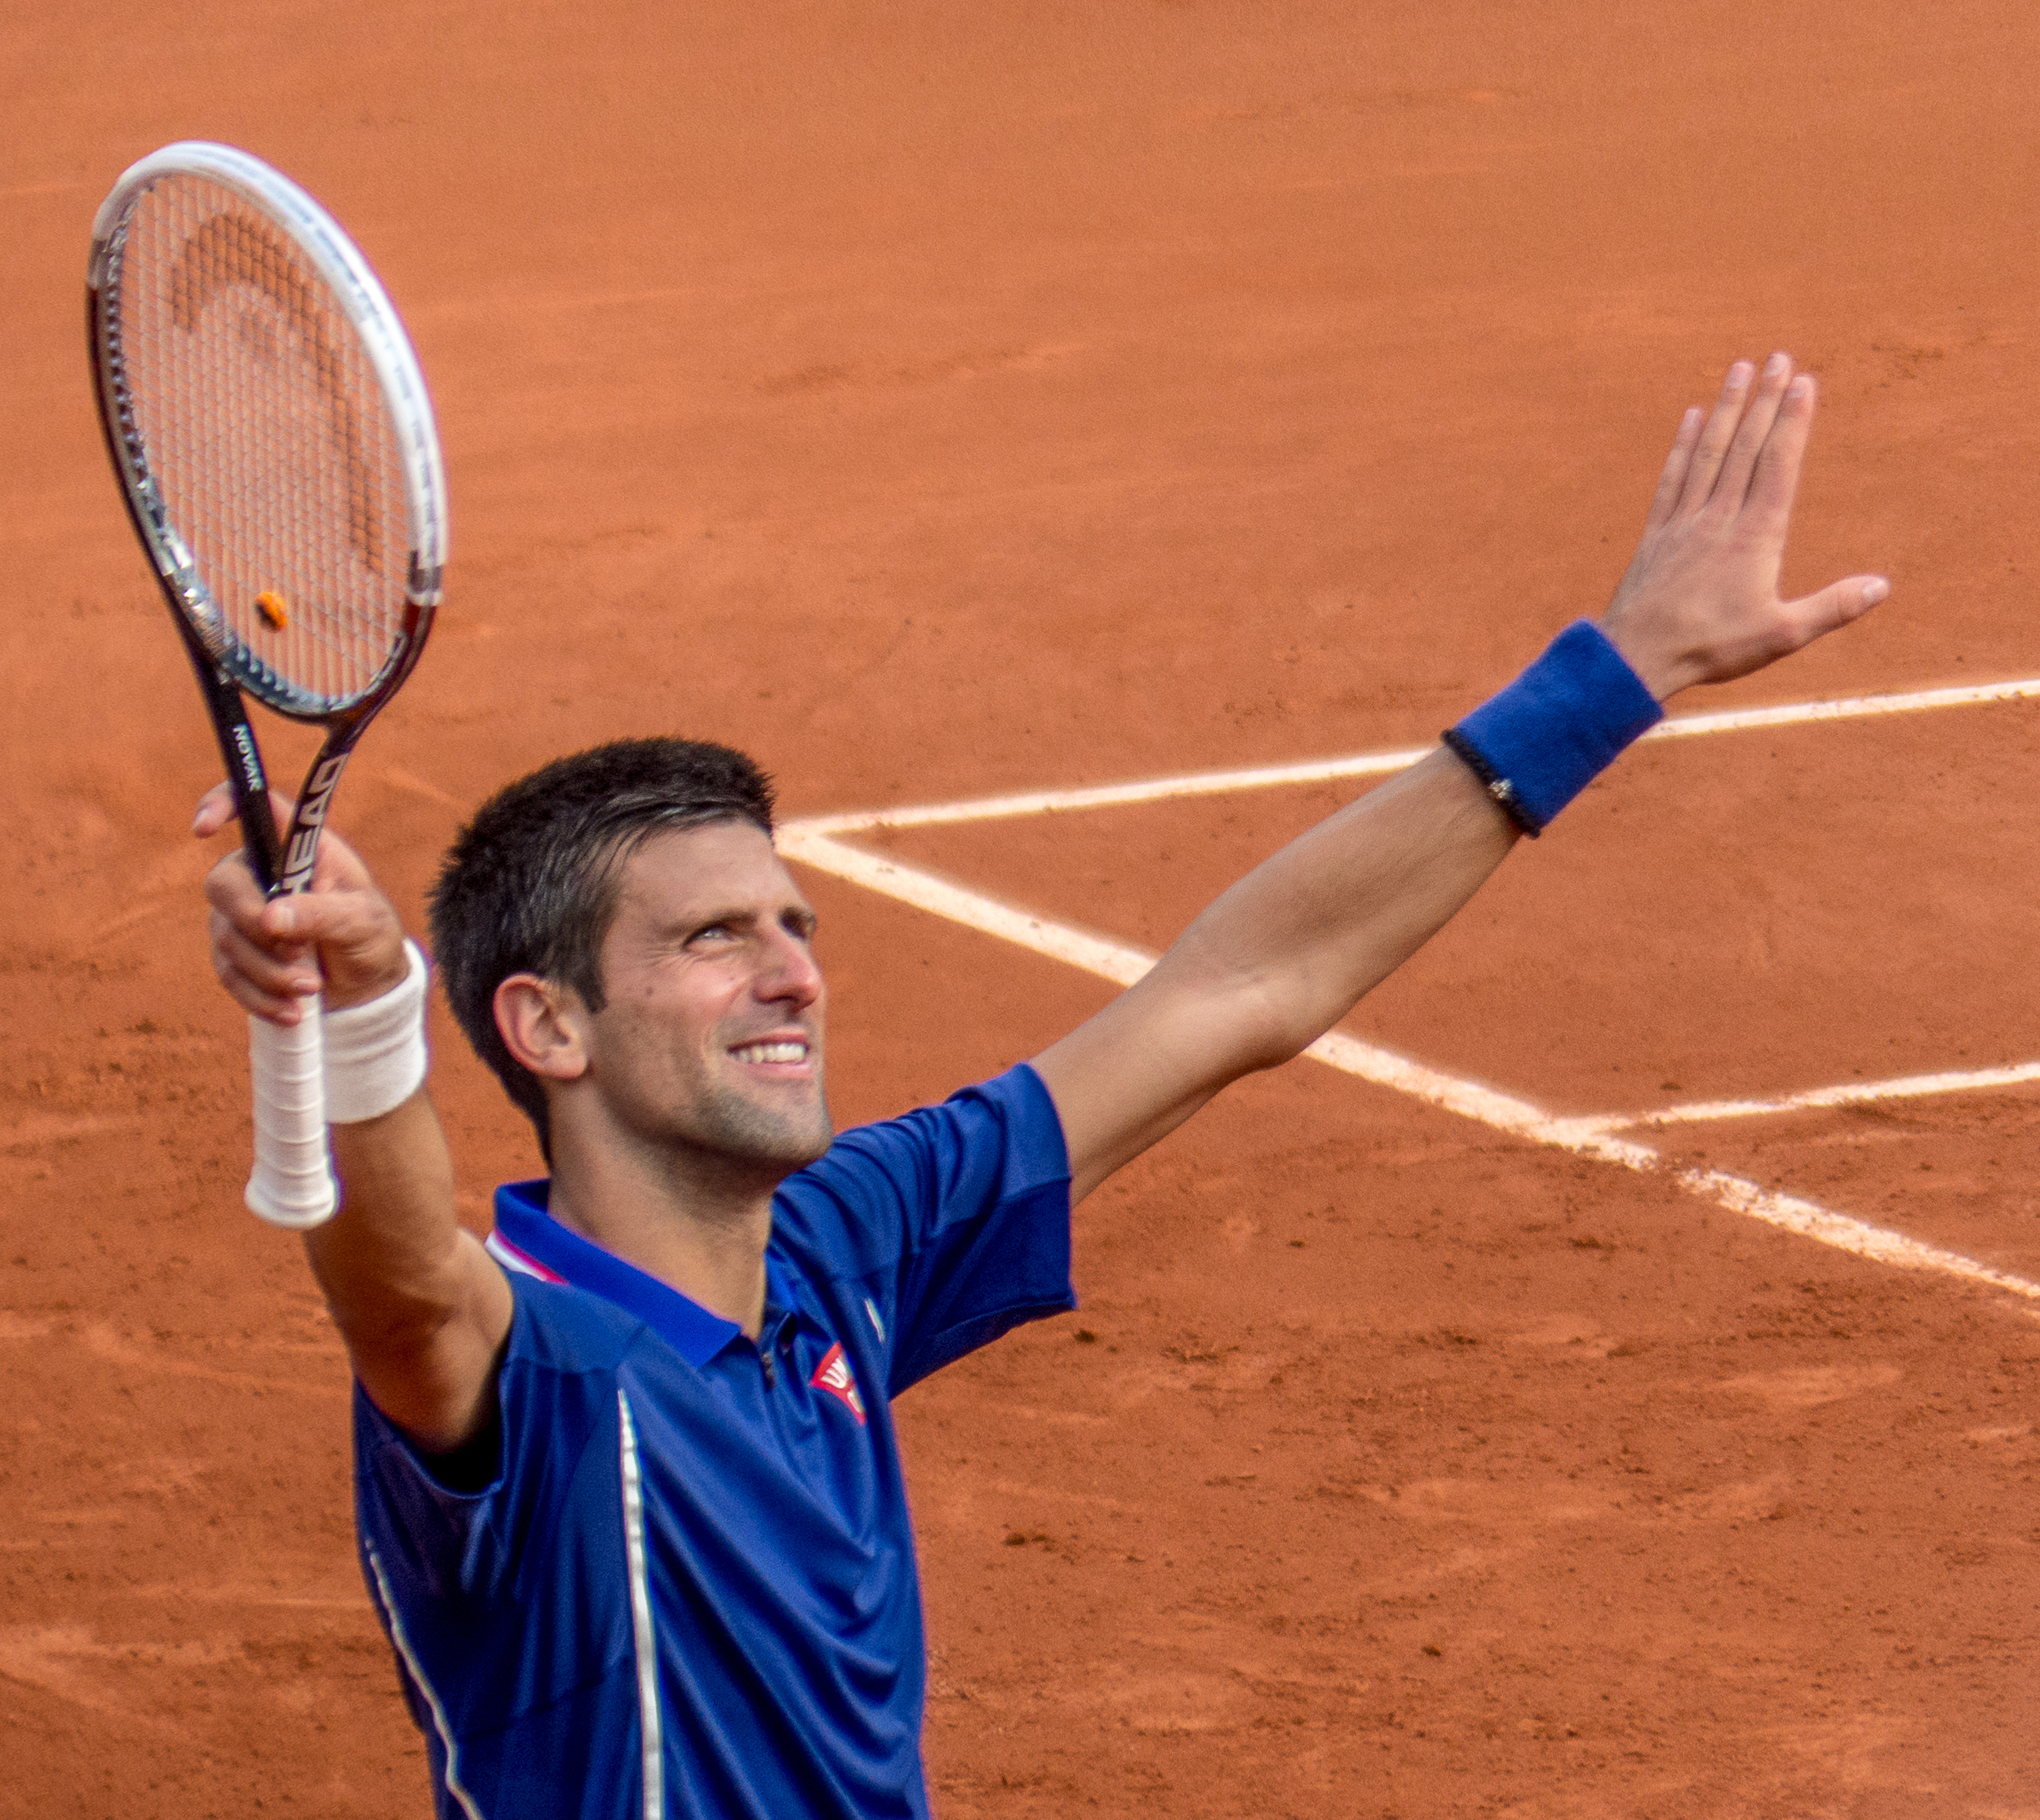 Novak Djokovic at the French Open, where he must make his stand against Rafael Nadal. Photograph by Yann Caradec.